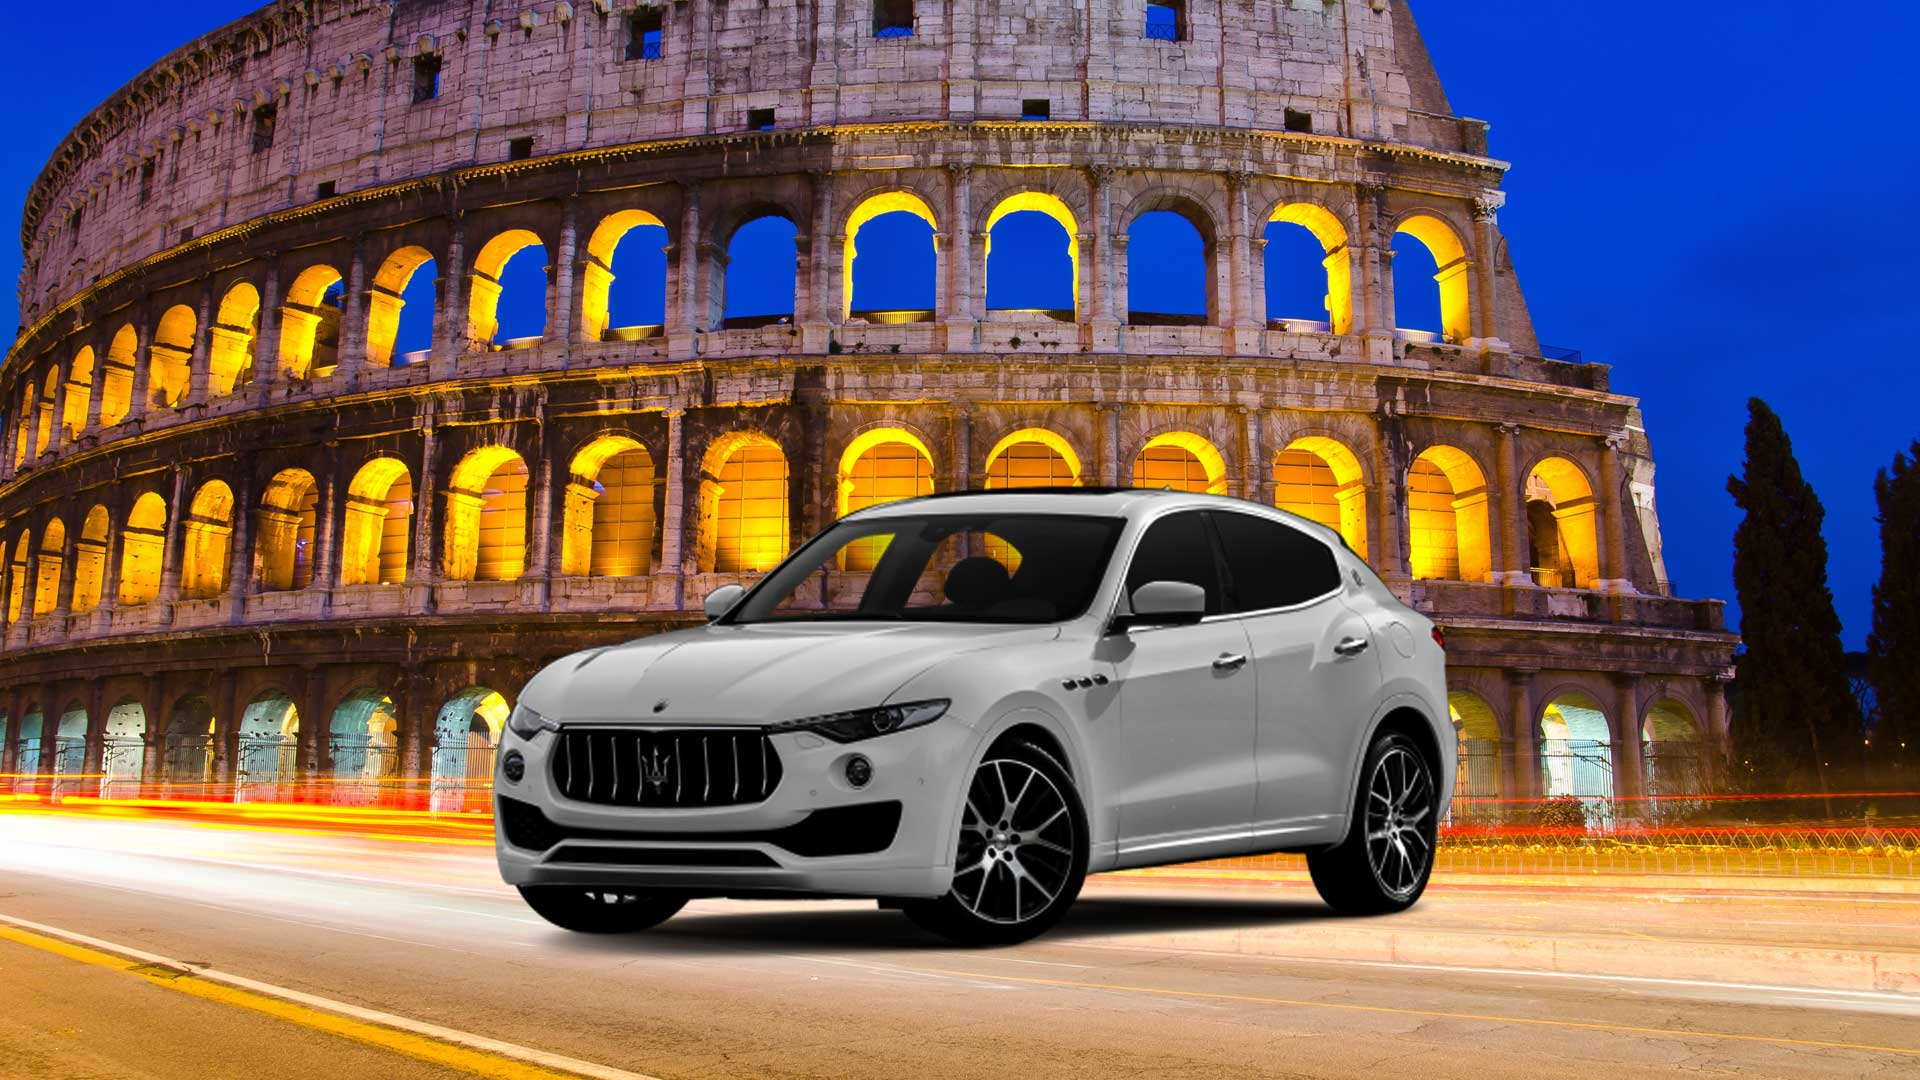 Rent your luxury car in Rome - Power Service